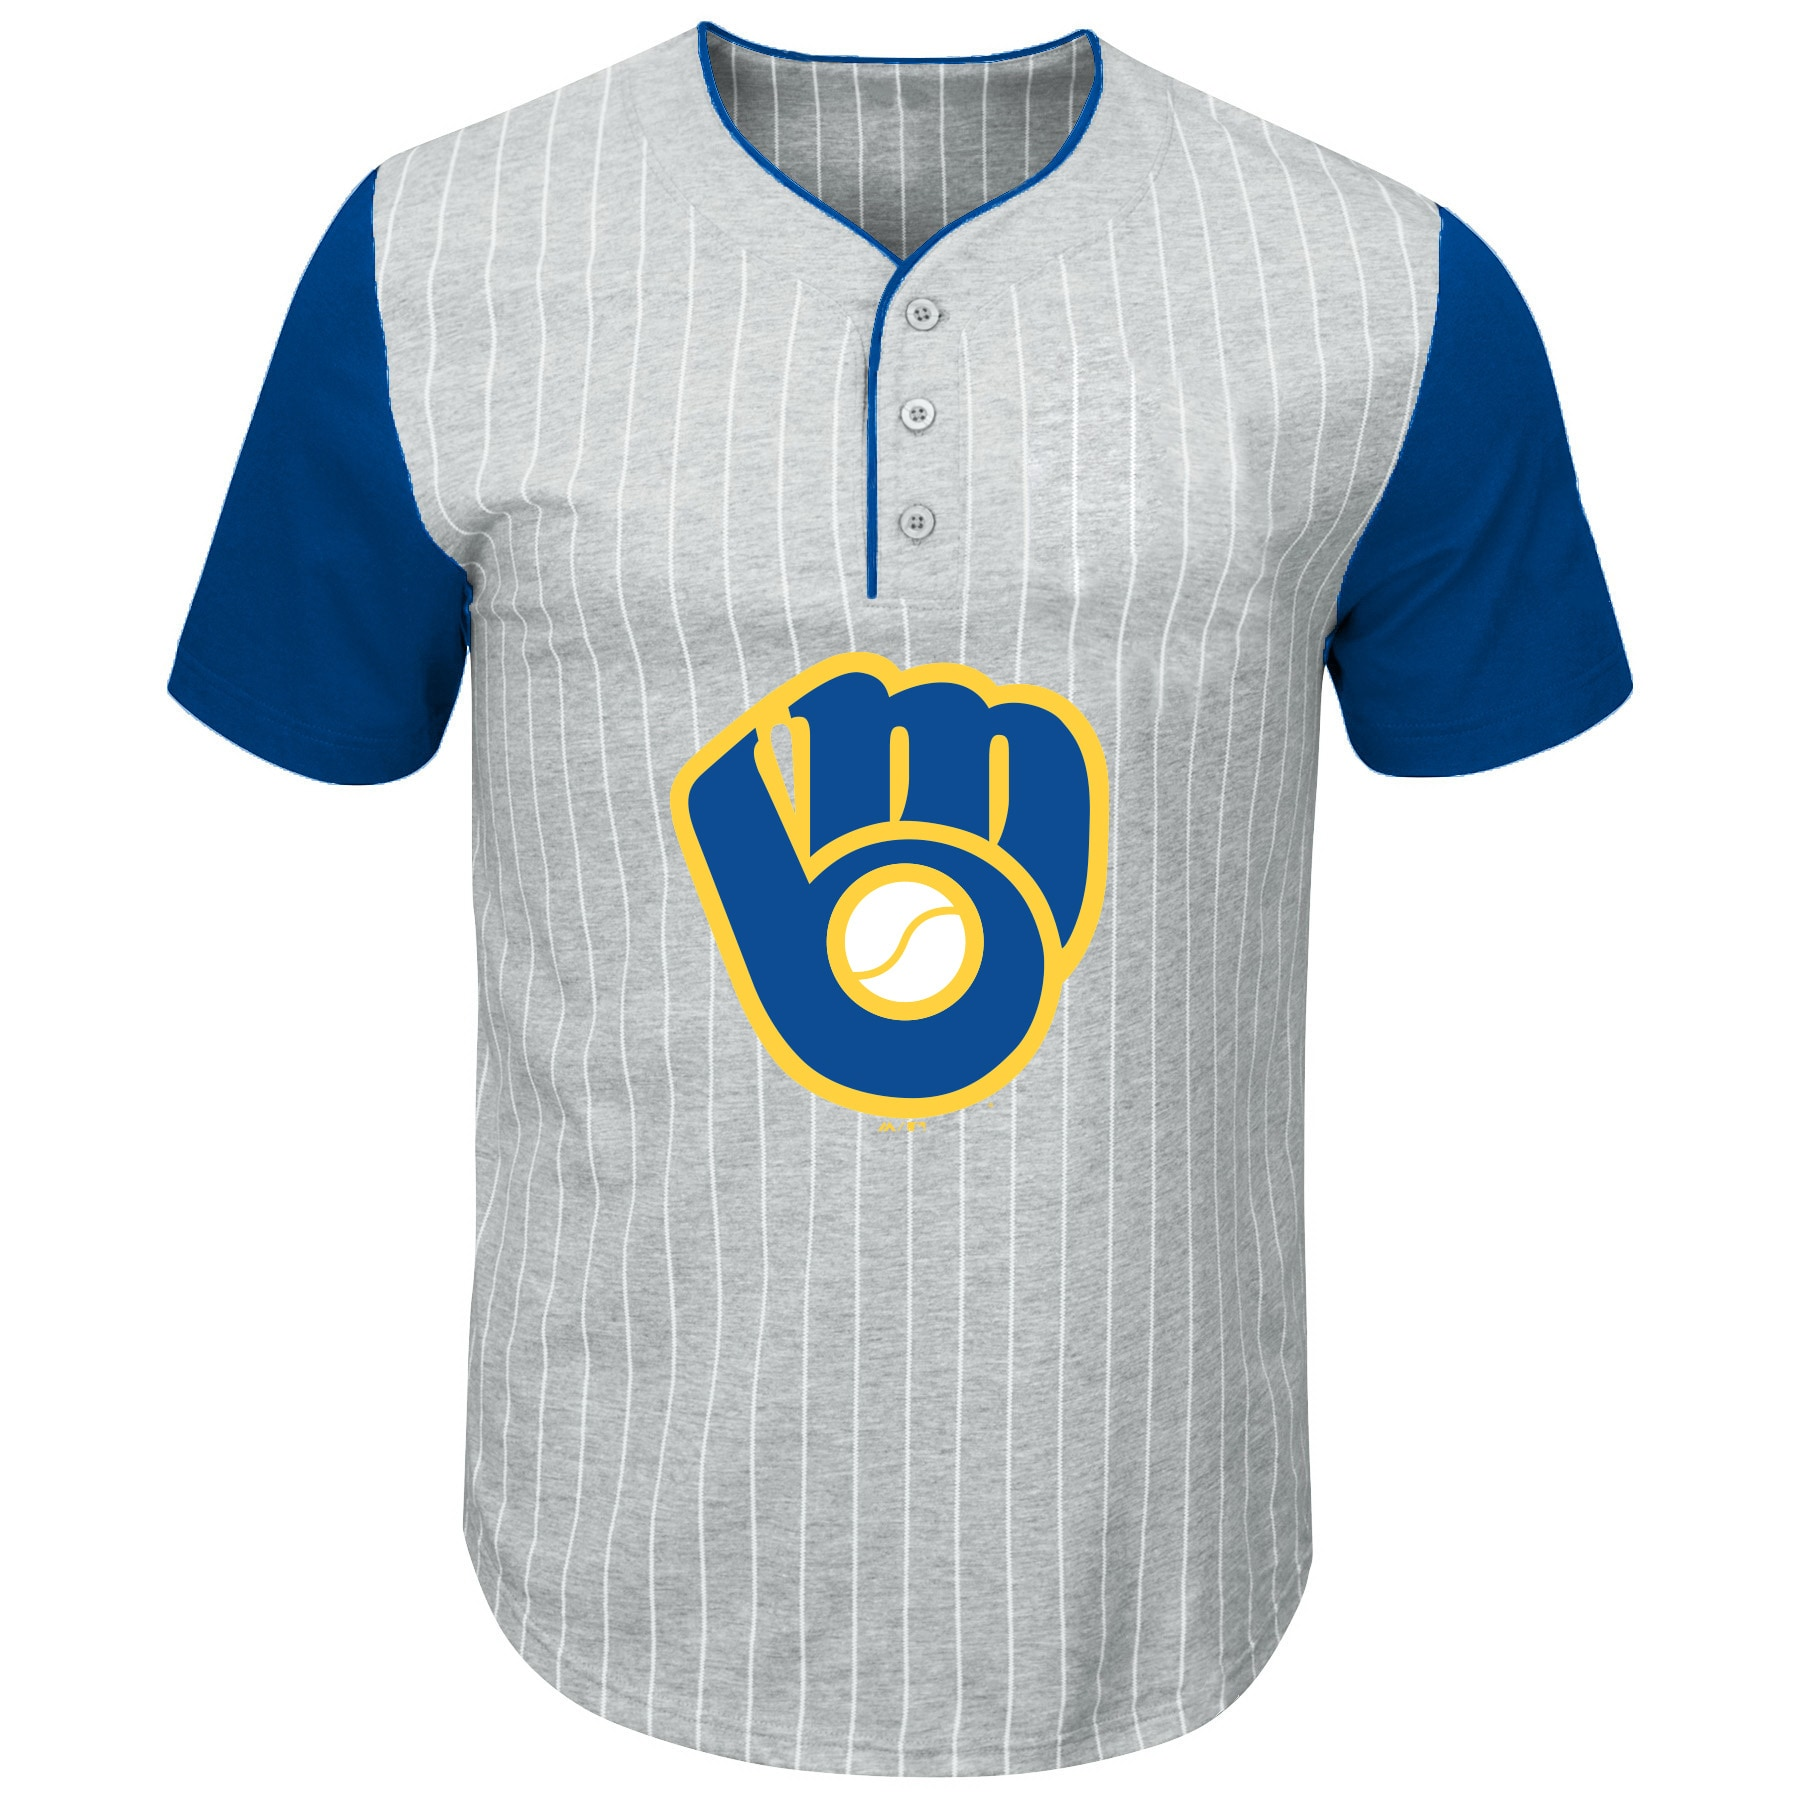 Milwaukee Brewers Majestic Big & Tall Cooperstown Collection Pinstripe Henley Raglan T-Shirt - Gray/Royal